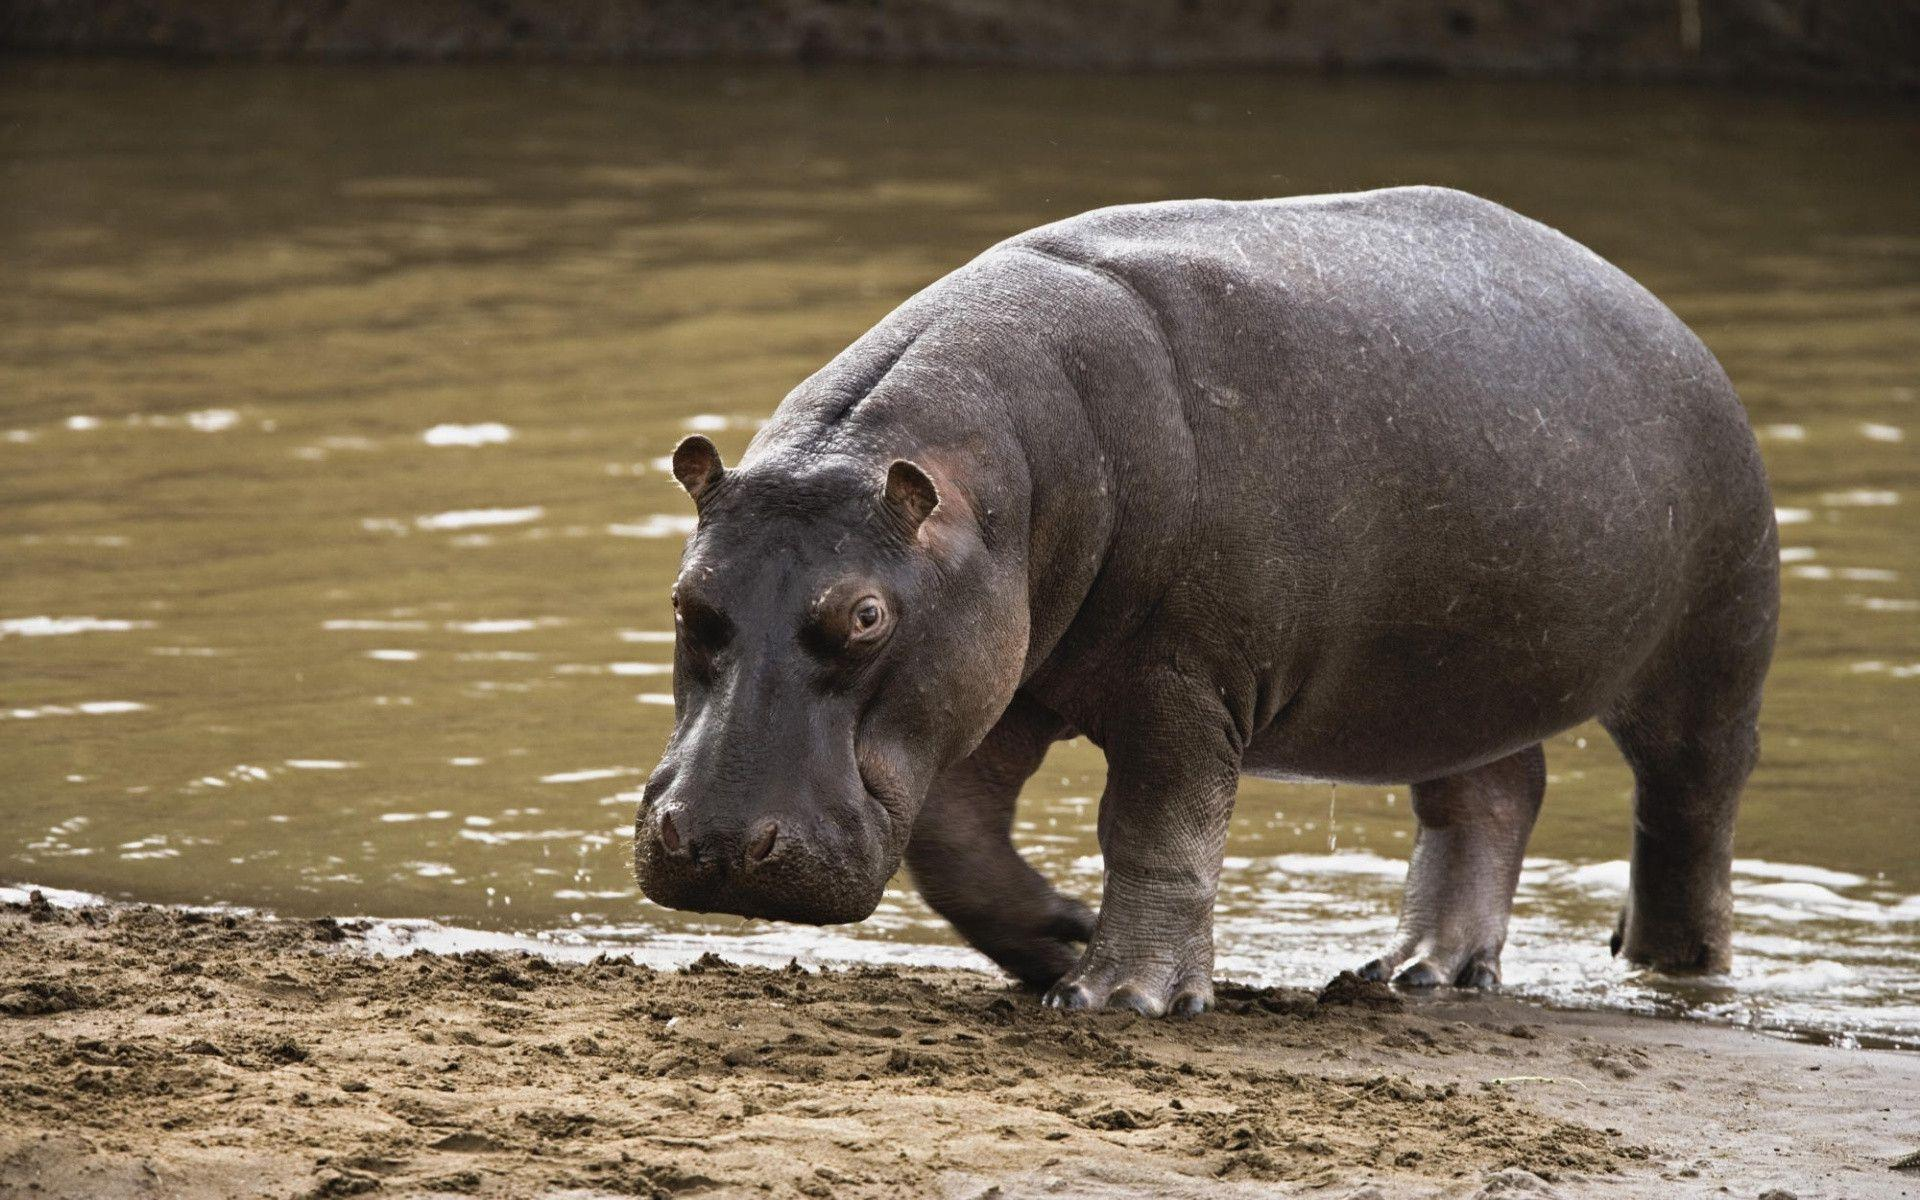 Hippopotamus Leaving the Water Free Stock Photo and Wallpaper